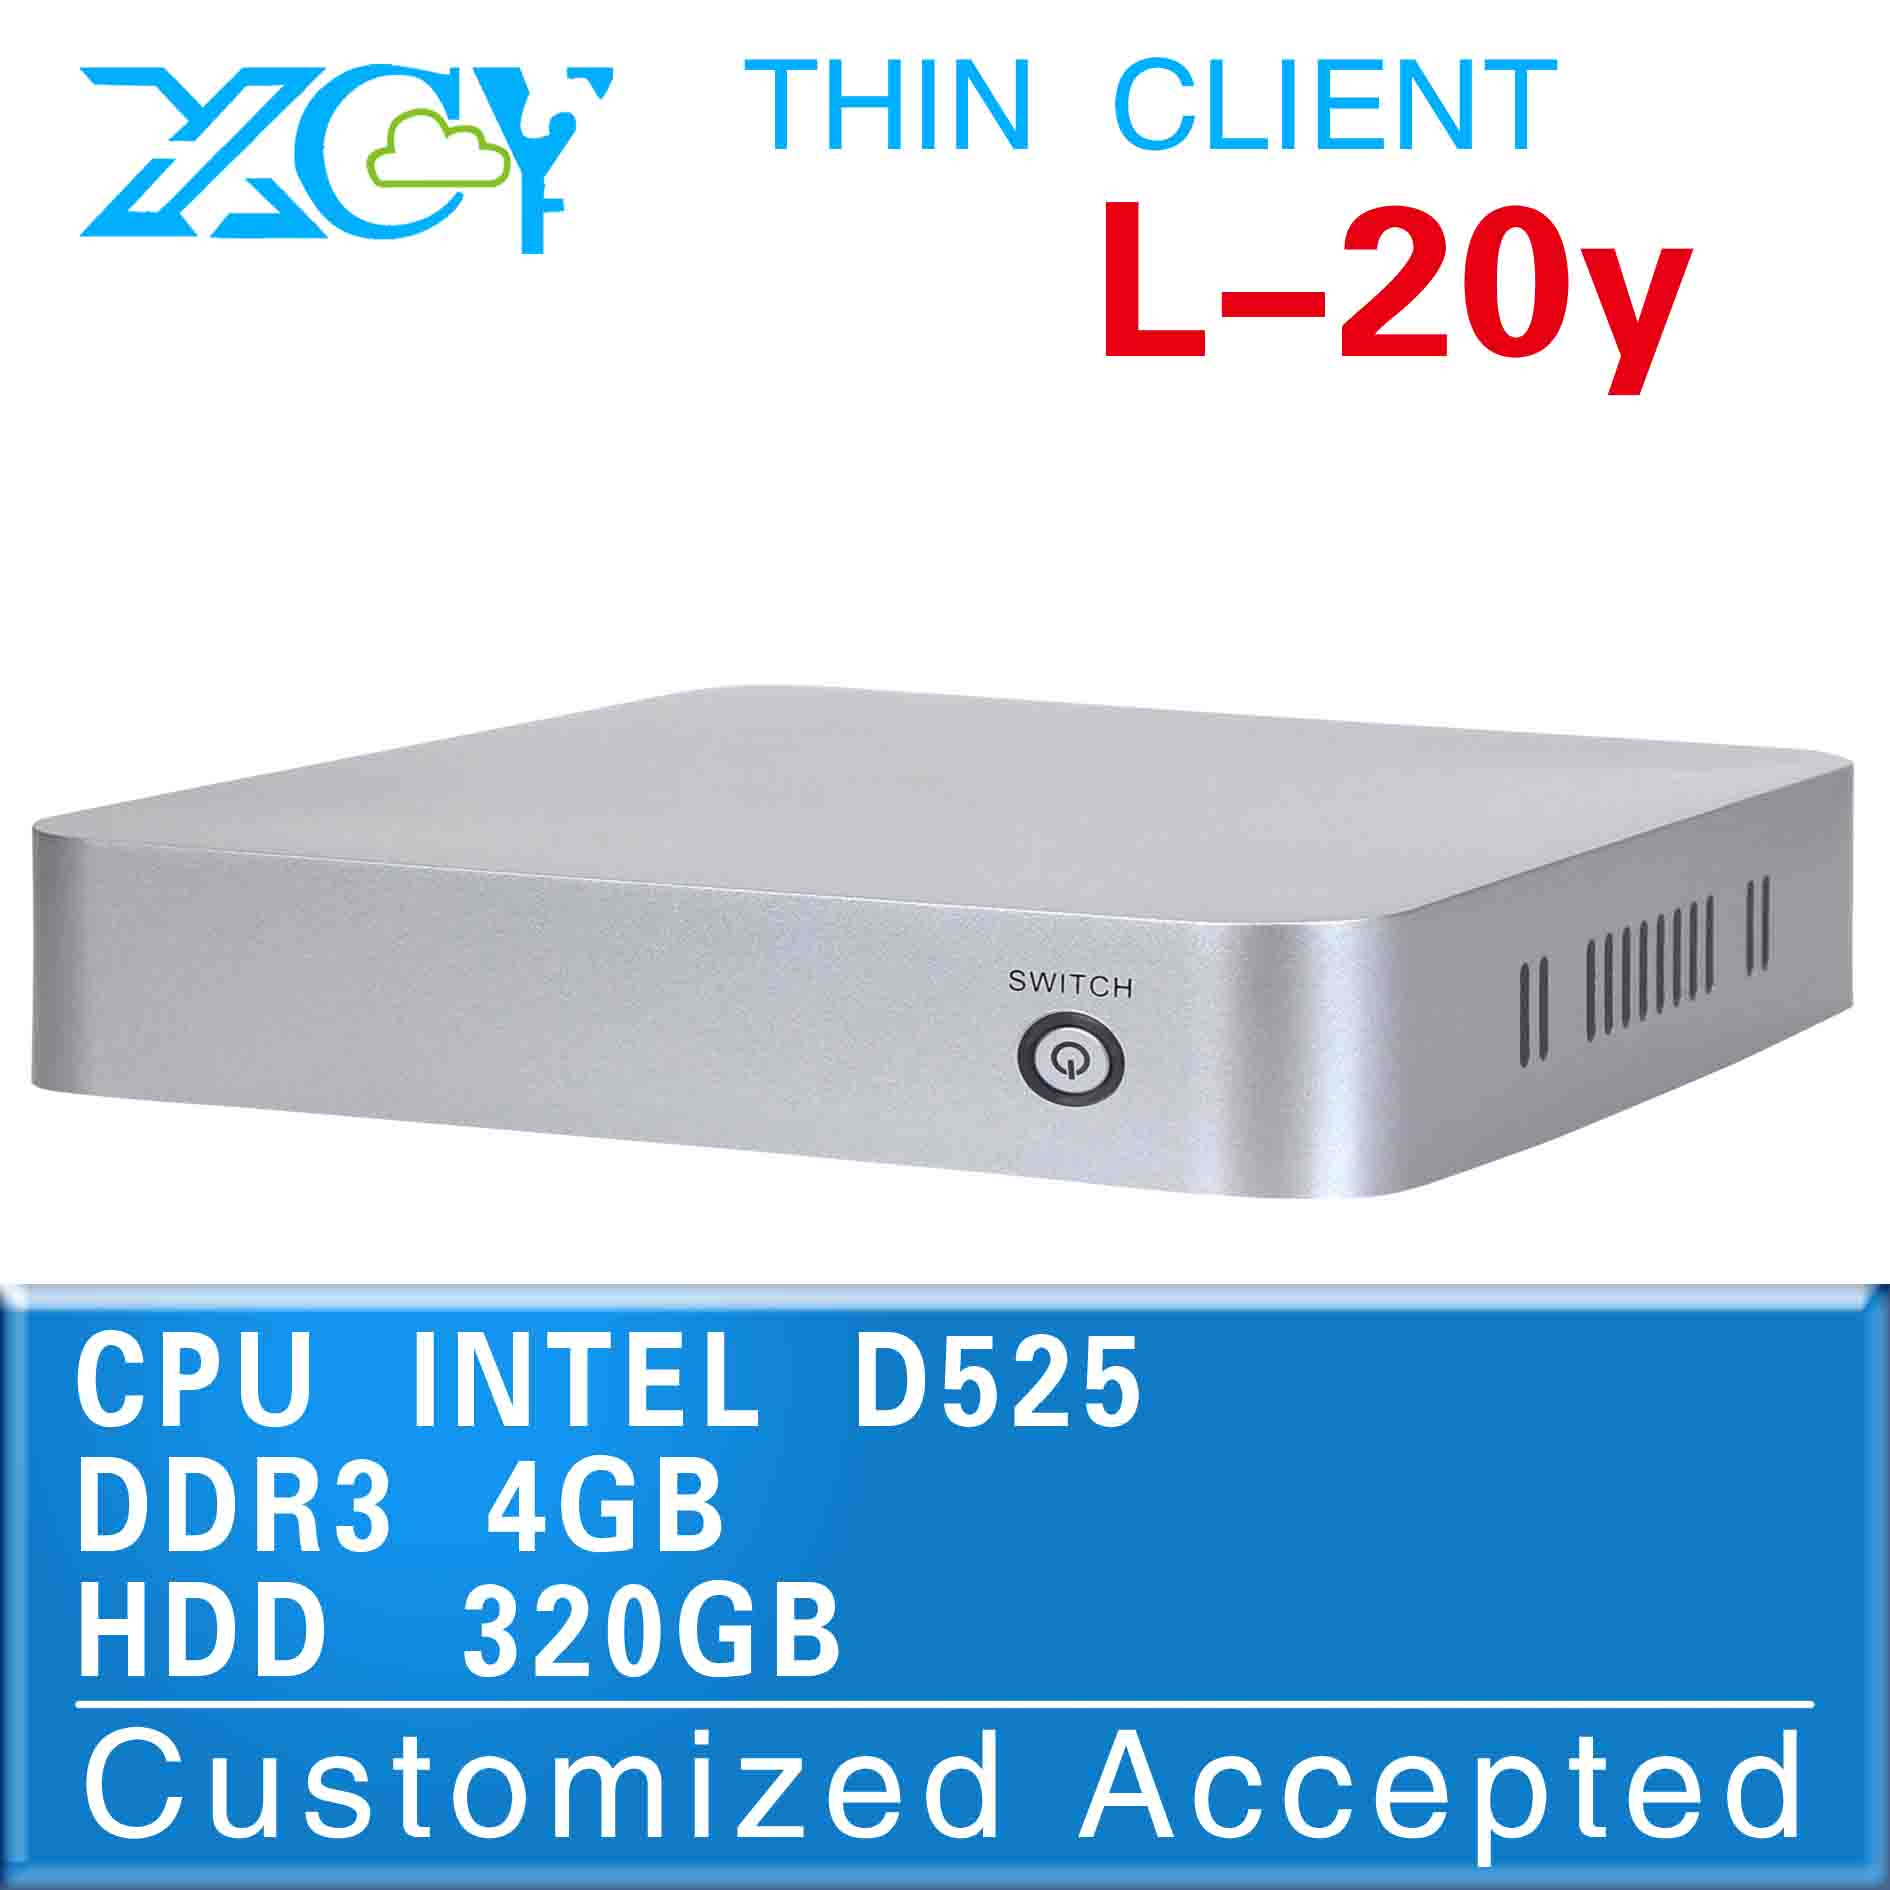 windows mini pc vga mini pc one pc multi users L-20Y D525 4G RAM 320G HDD support Home Premium and embedded cheapest(China (Mainland))